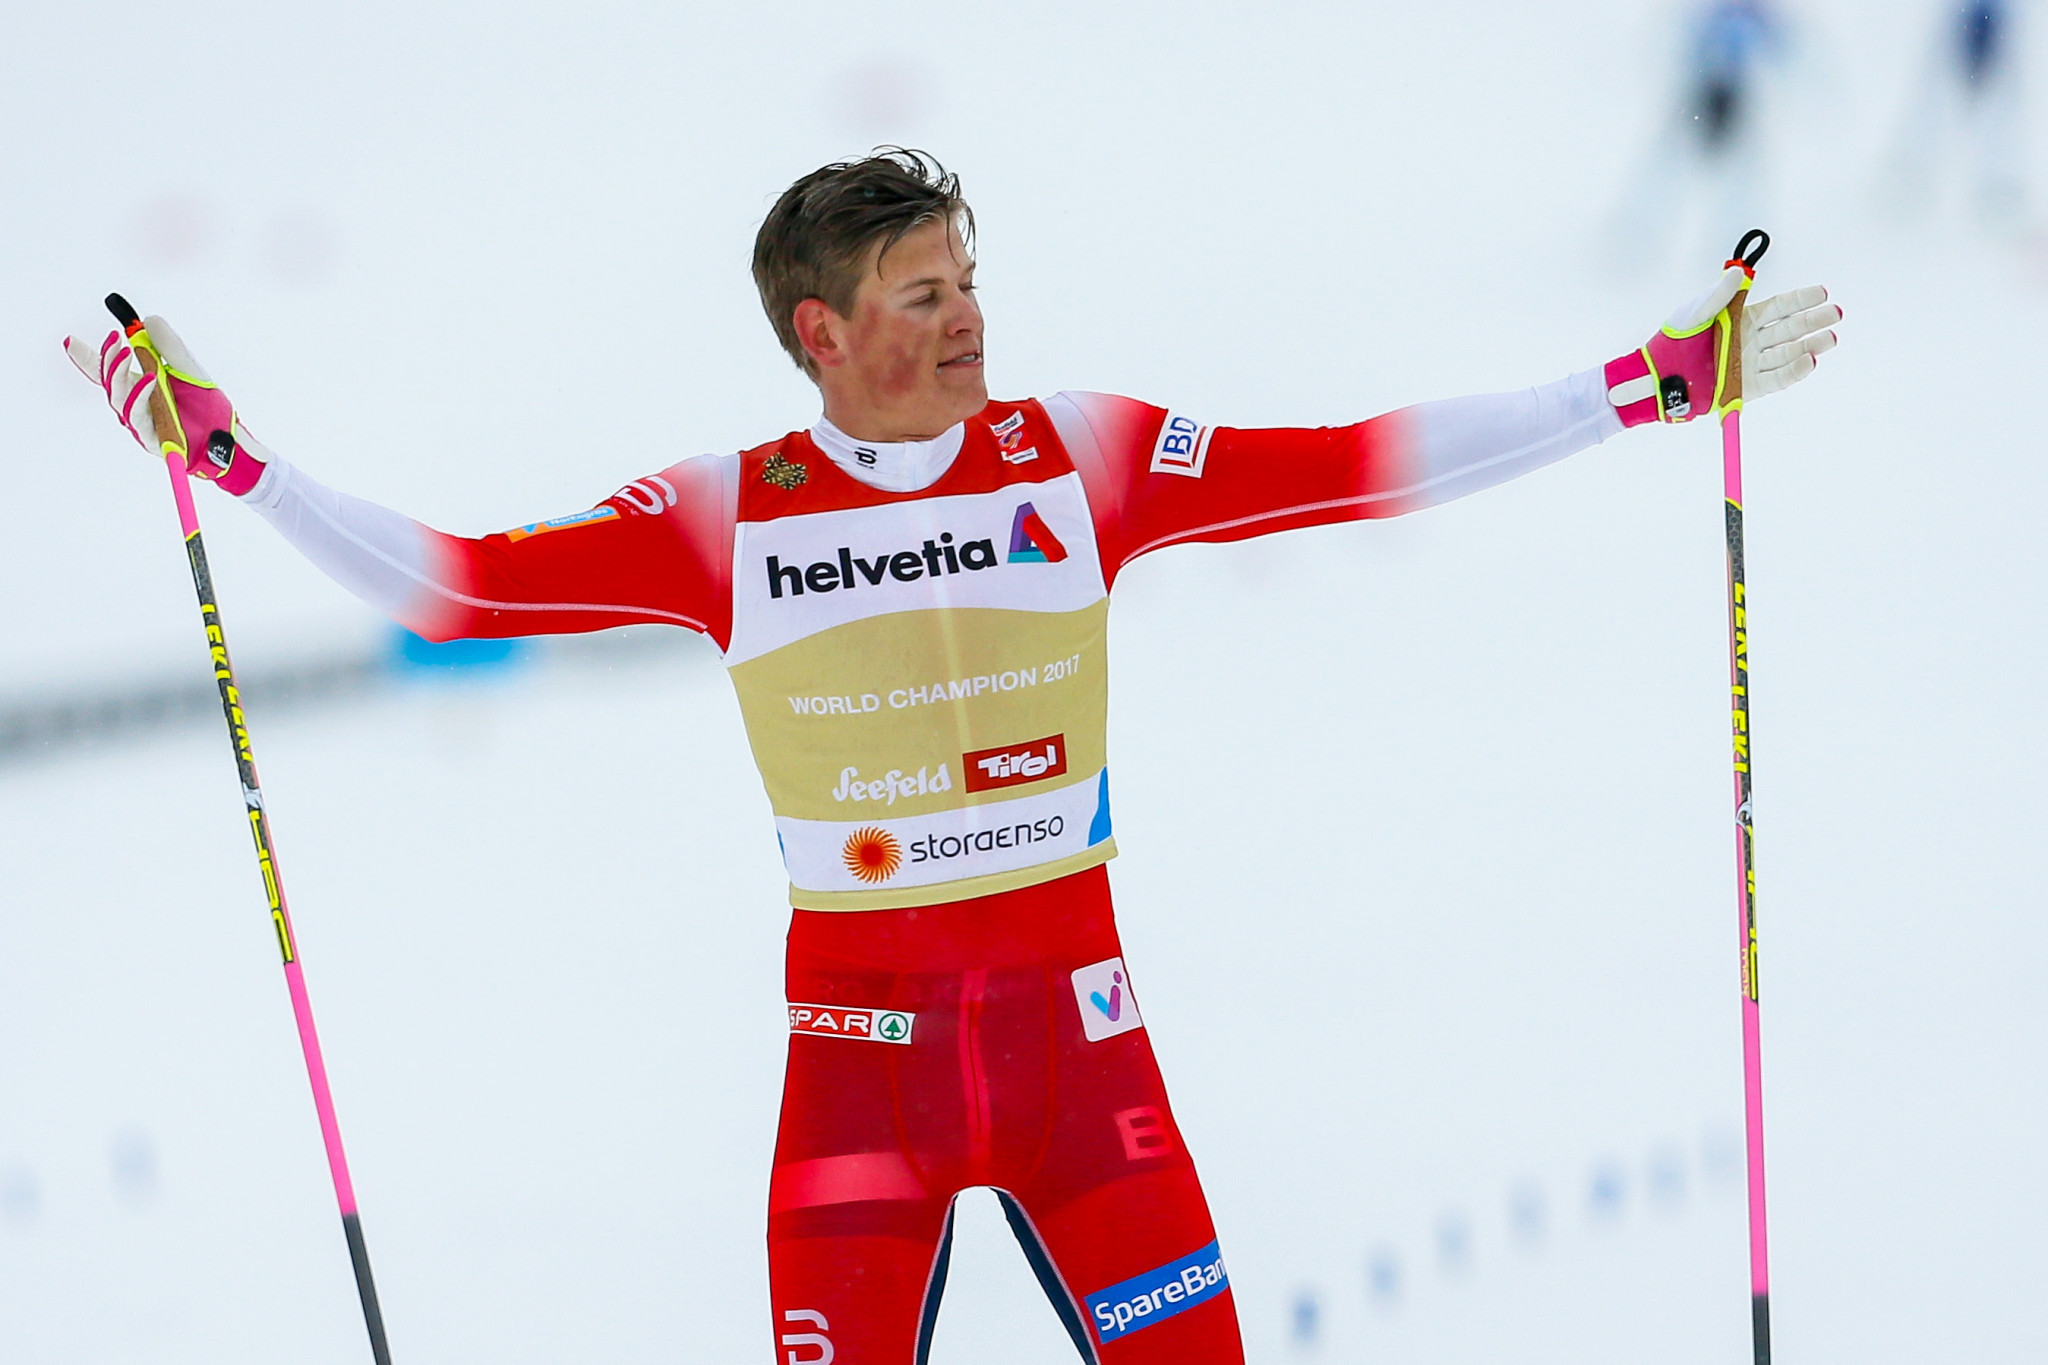 Norway's Johannes Høsflot Klæbo will be vying for success in the men's sprint and 15km events ©Getty Images